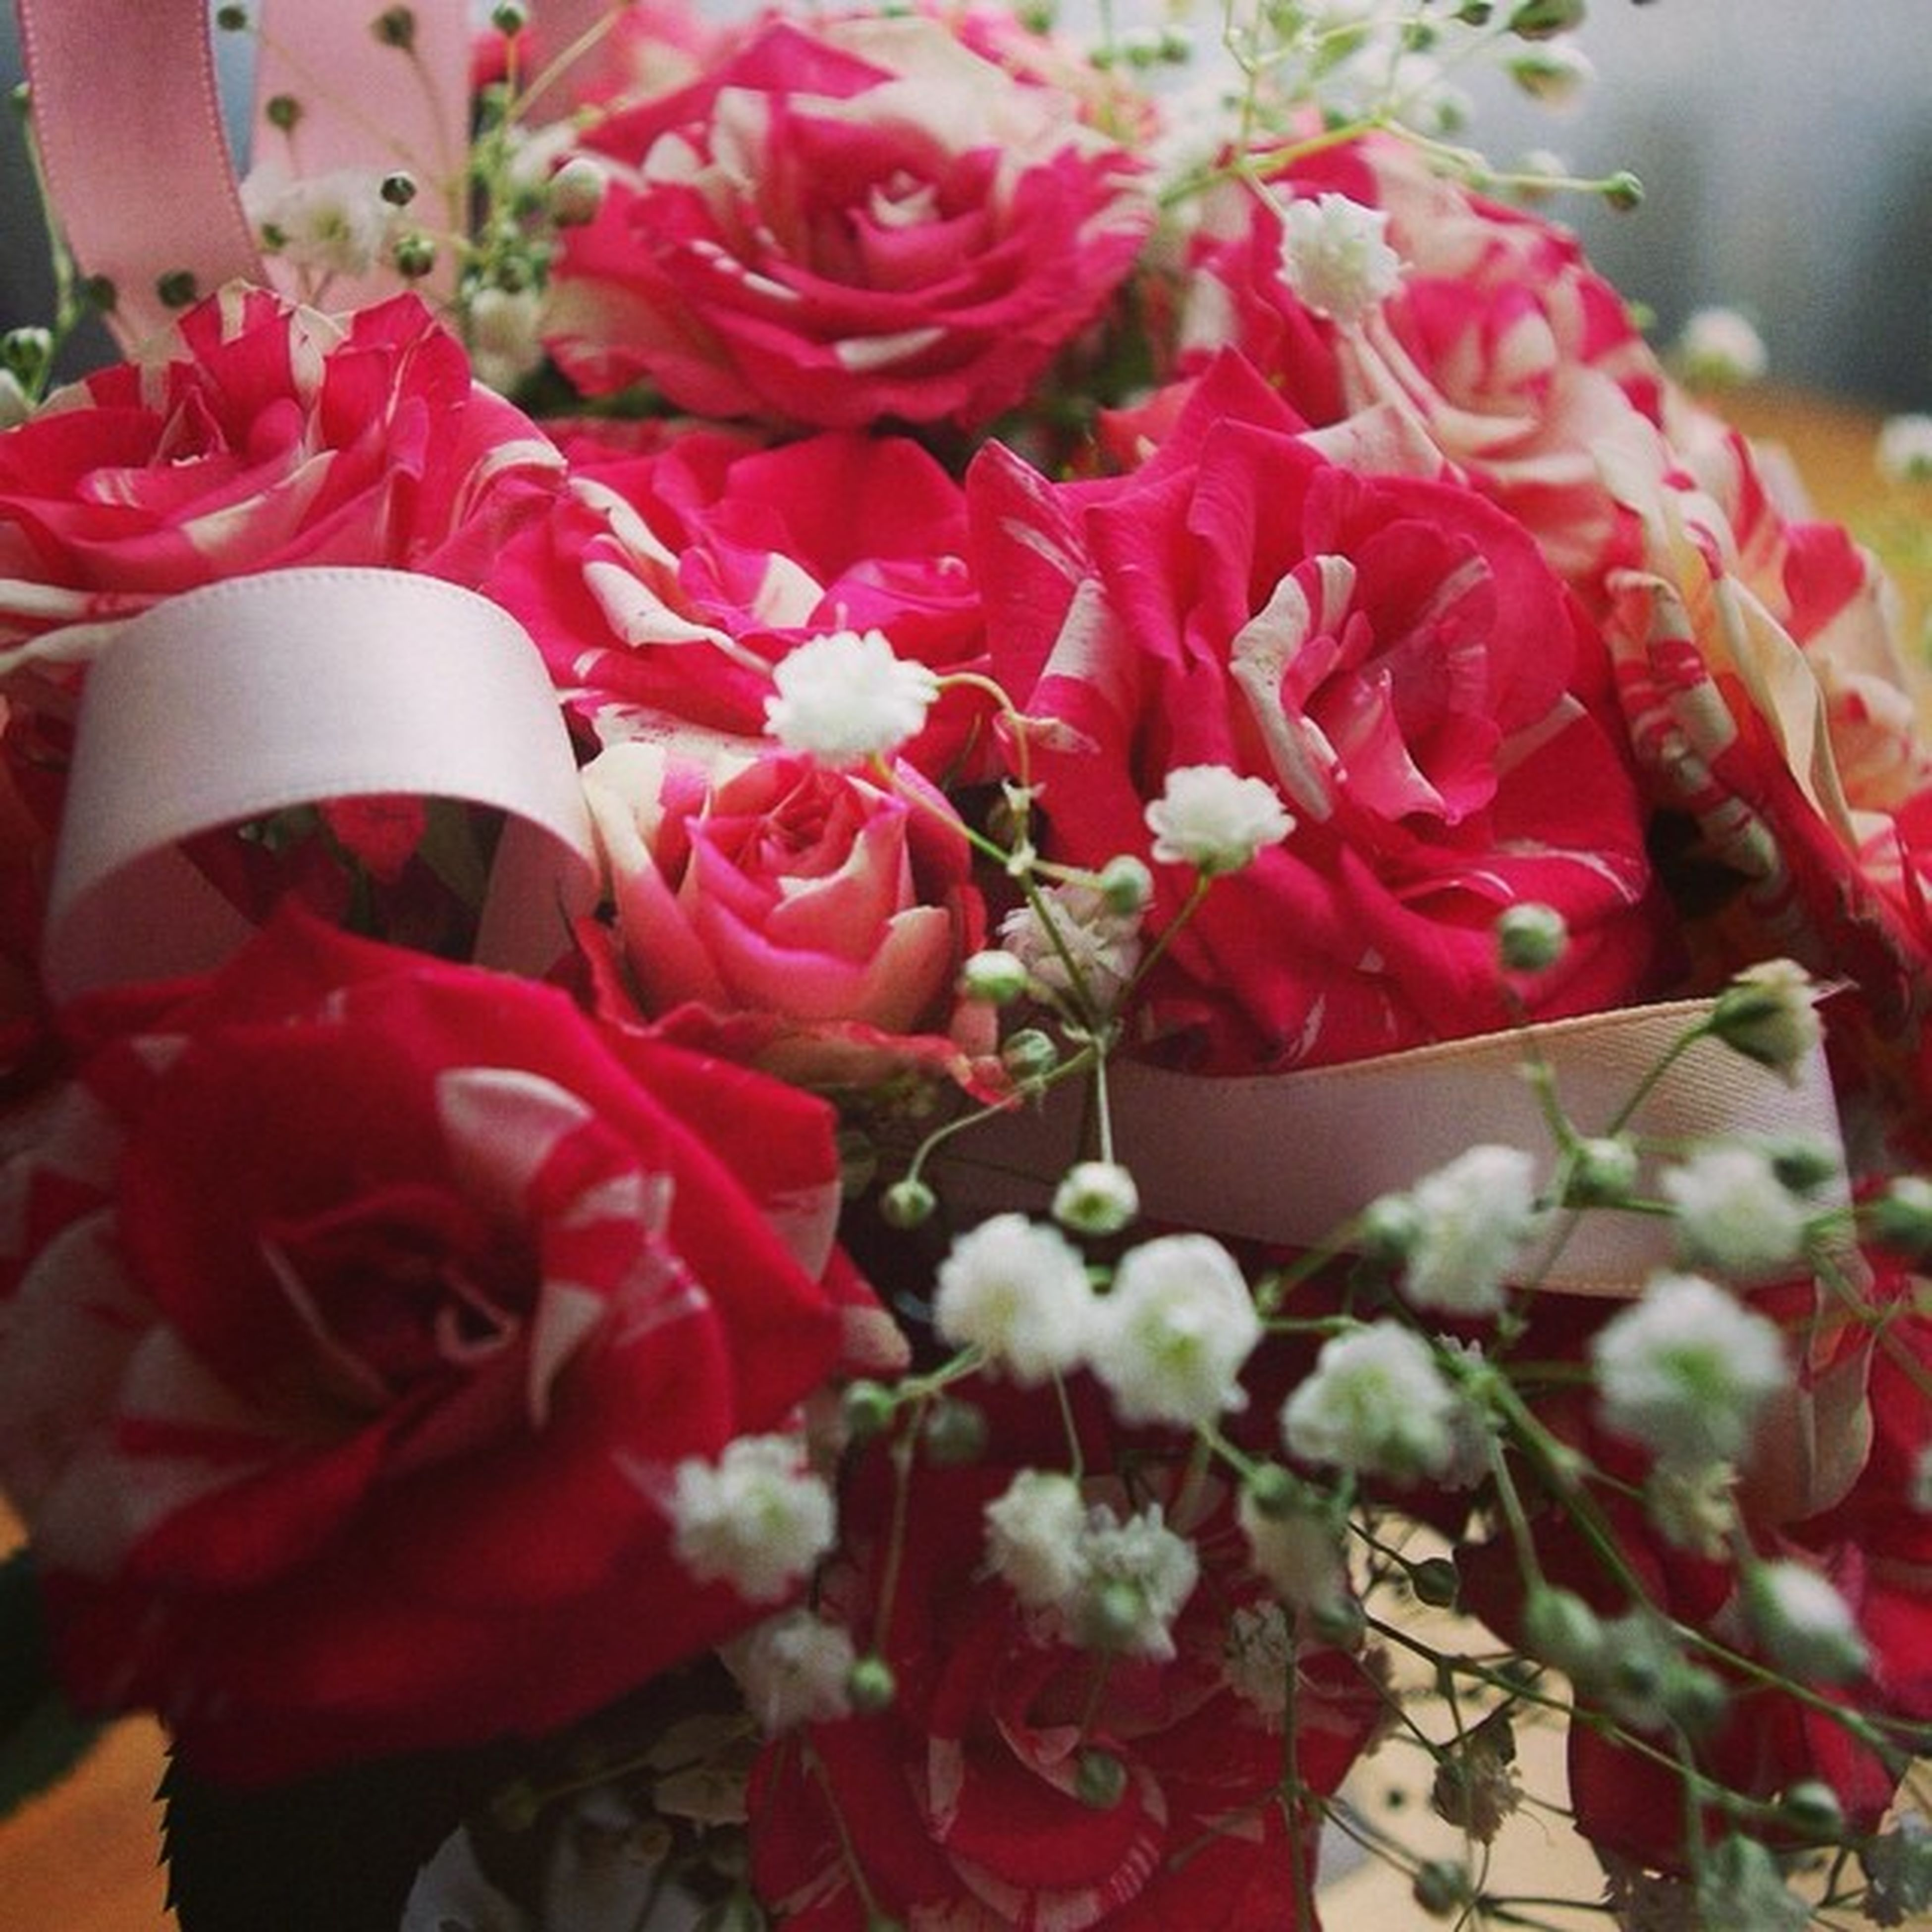 flower, petal, freshness, indoors, red, fragility, flower head, rose - flower, close-up, bouquet, pink color, beauty in nature, vase, decoration, growth, plant, nature, bunch of flowers, blooming, no people